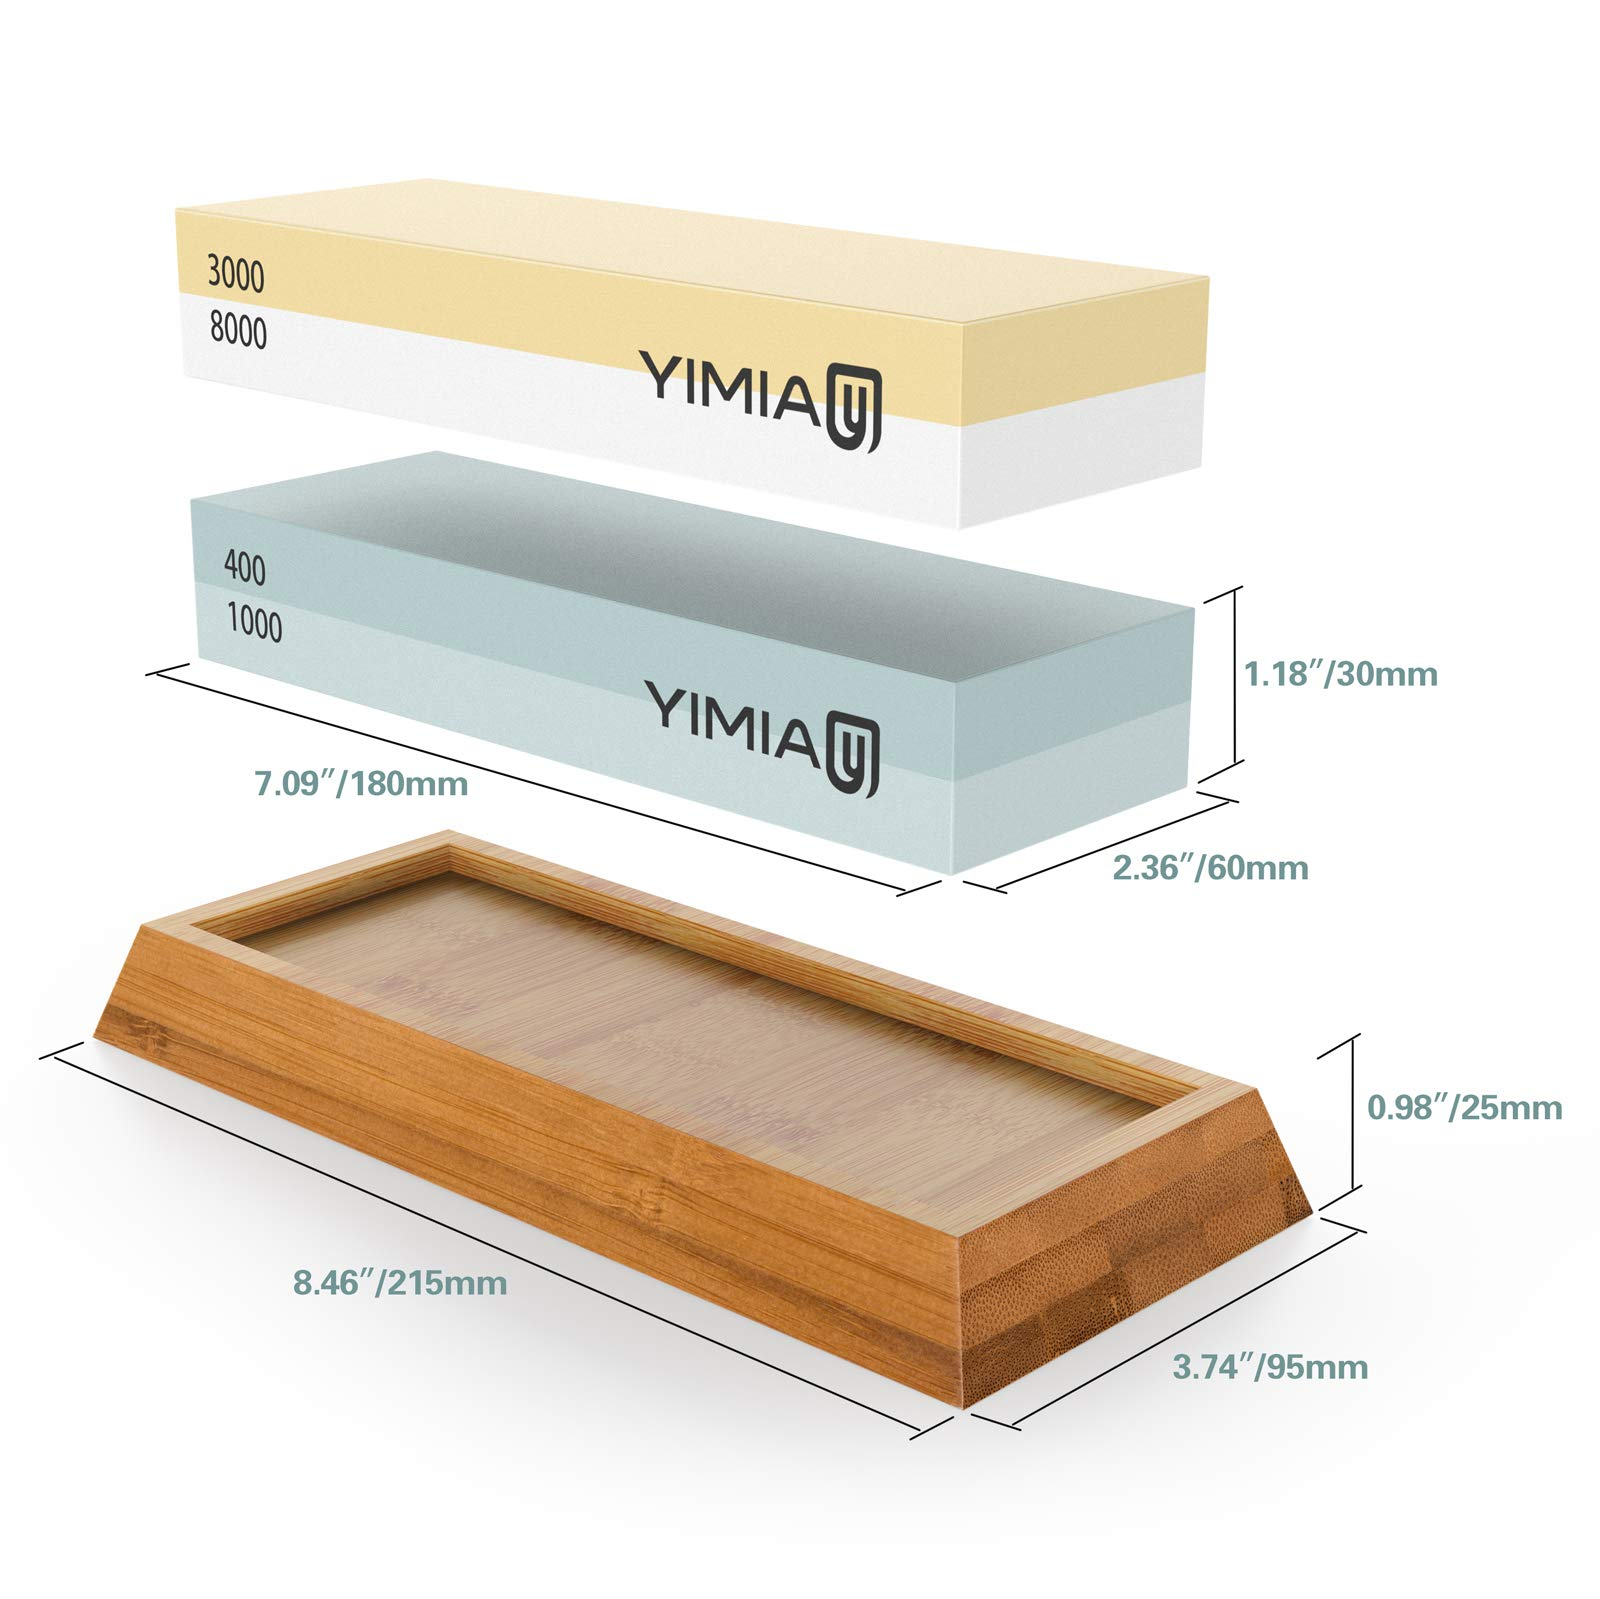 Sharpening Stone Kit, YIMIA 4 Side Grit 400/1000 3000/8000 Whetstone, Knife Sharpener Waterstone with Non-Slip Bamboo Base & Flattening Stone & Angle Guide by YIMIA (Image #1)